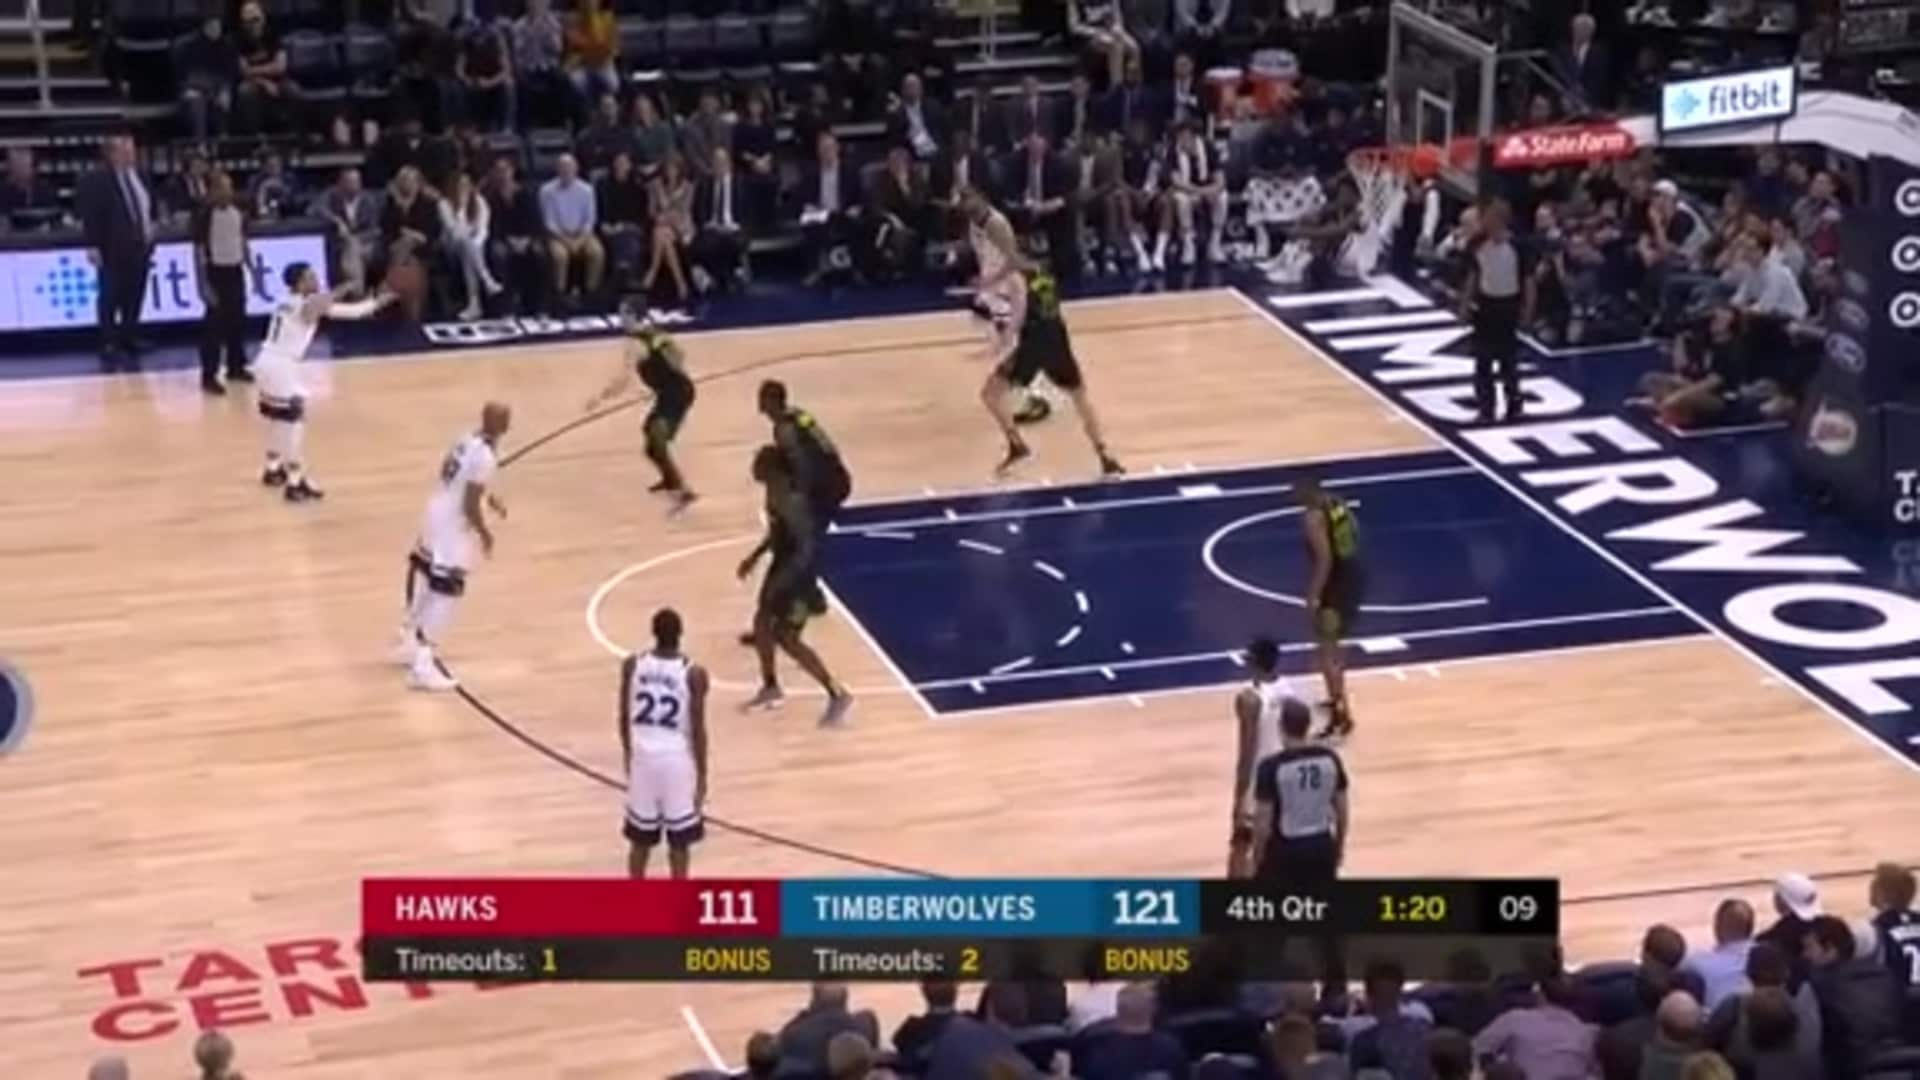 History Vault | Karl-Anthony Towns Scores Franchise-Record 56 Points vs. Hawks (3.28.18)